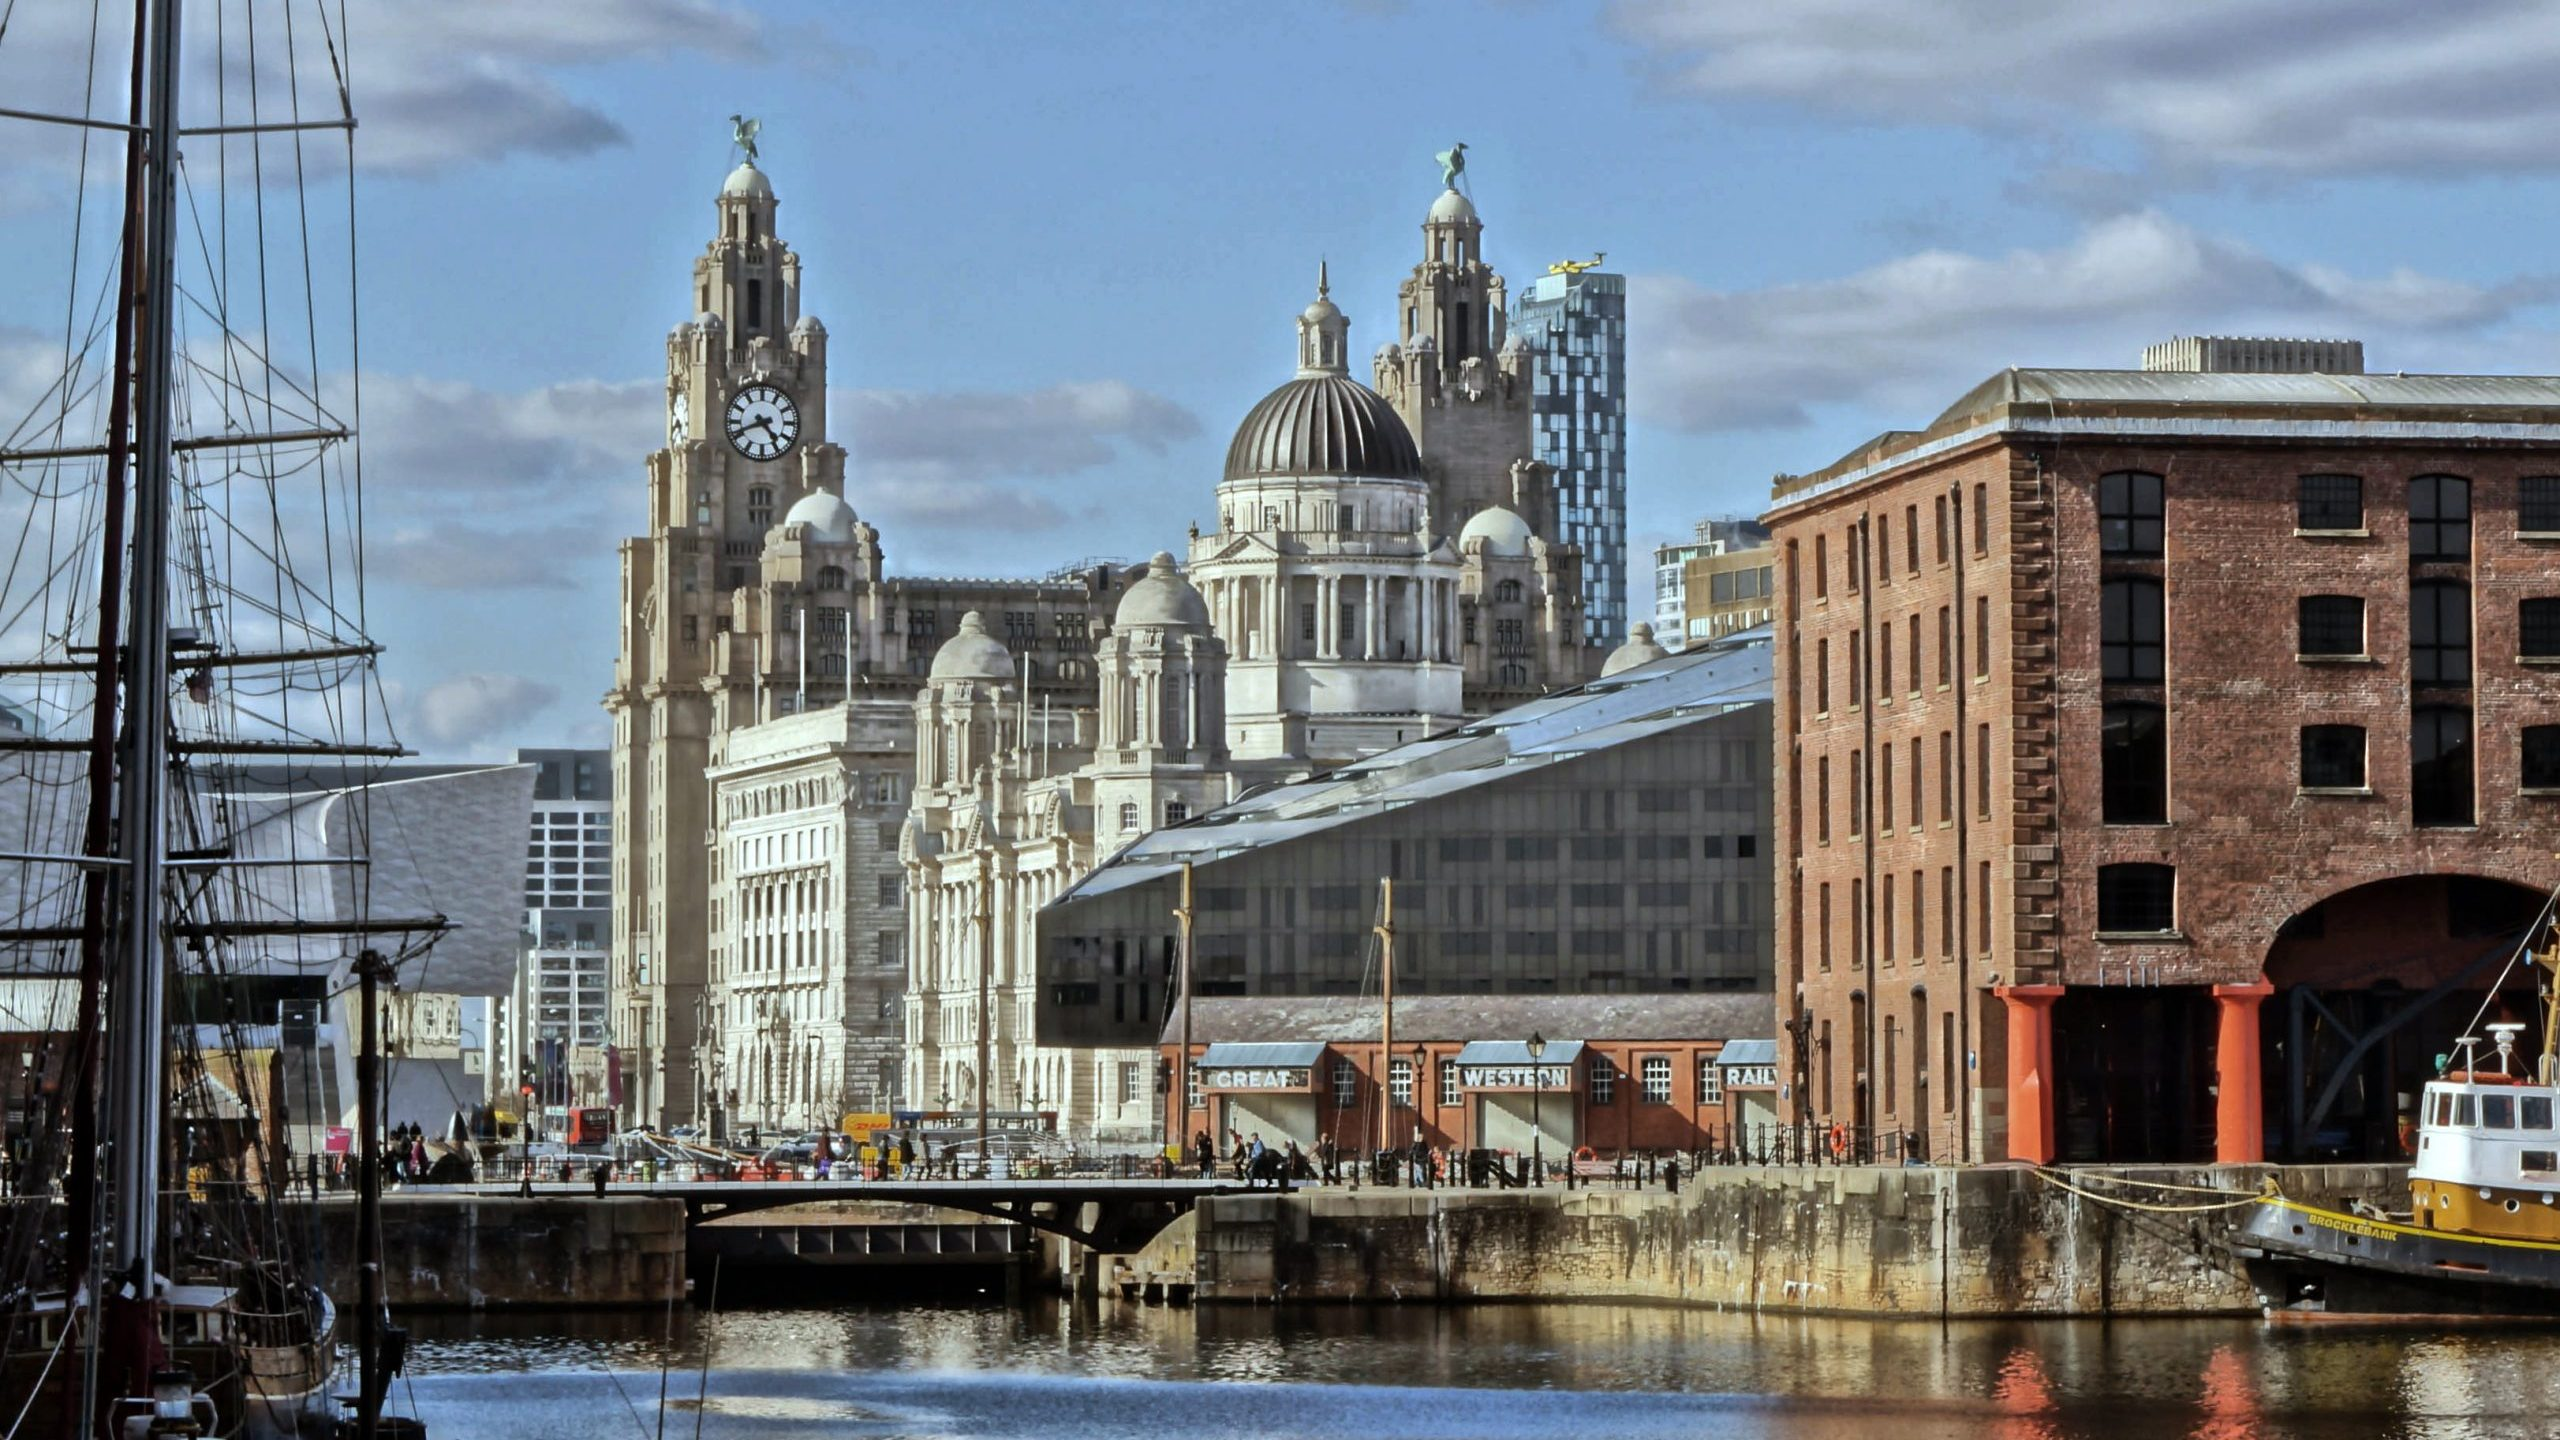 Liverpool has been listed as a maritime mercantile city on the Unesco world heritage list since 2004